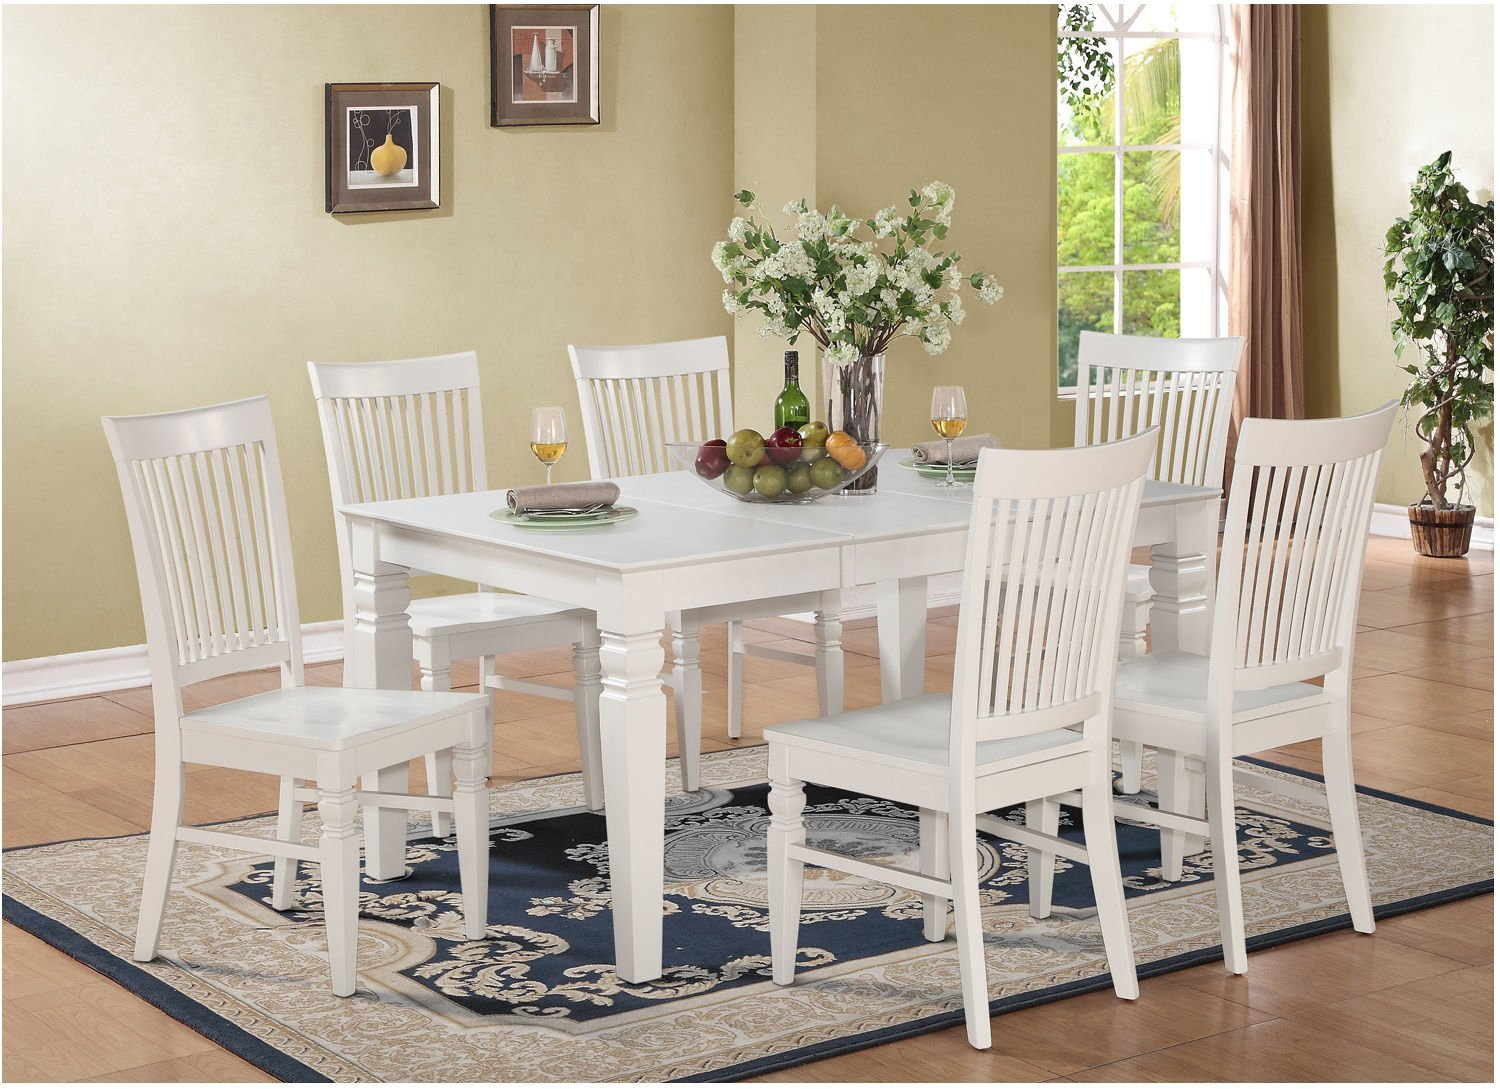 white 6 chair dining table gray folding chairs buy harmonizing linen wood set with 4